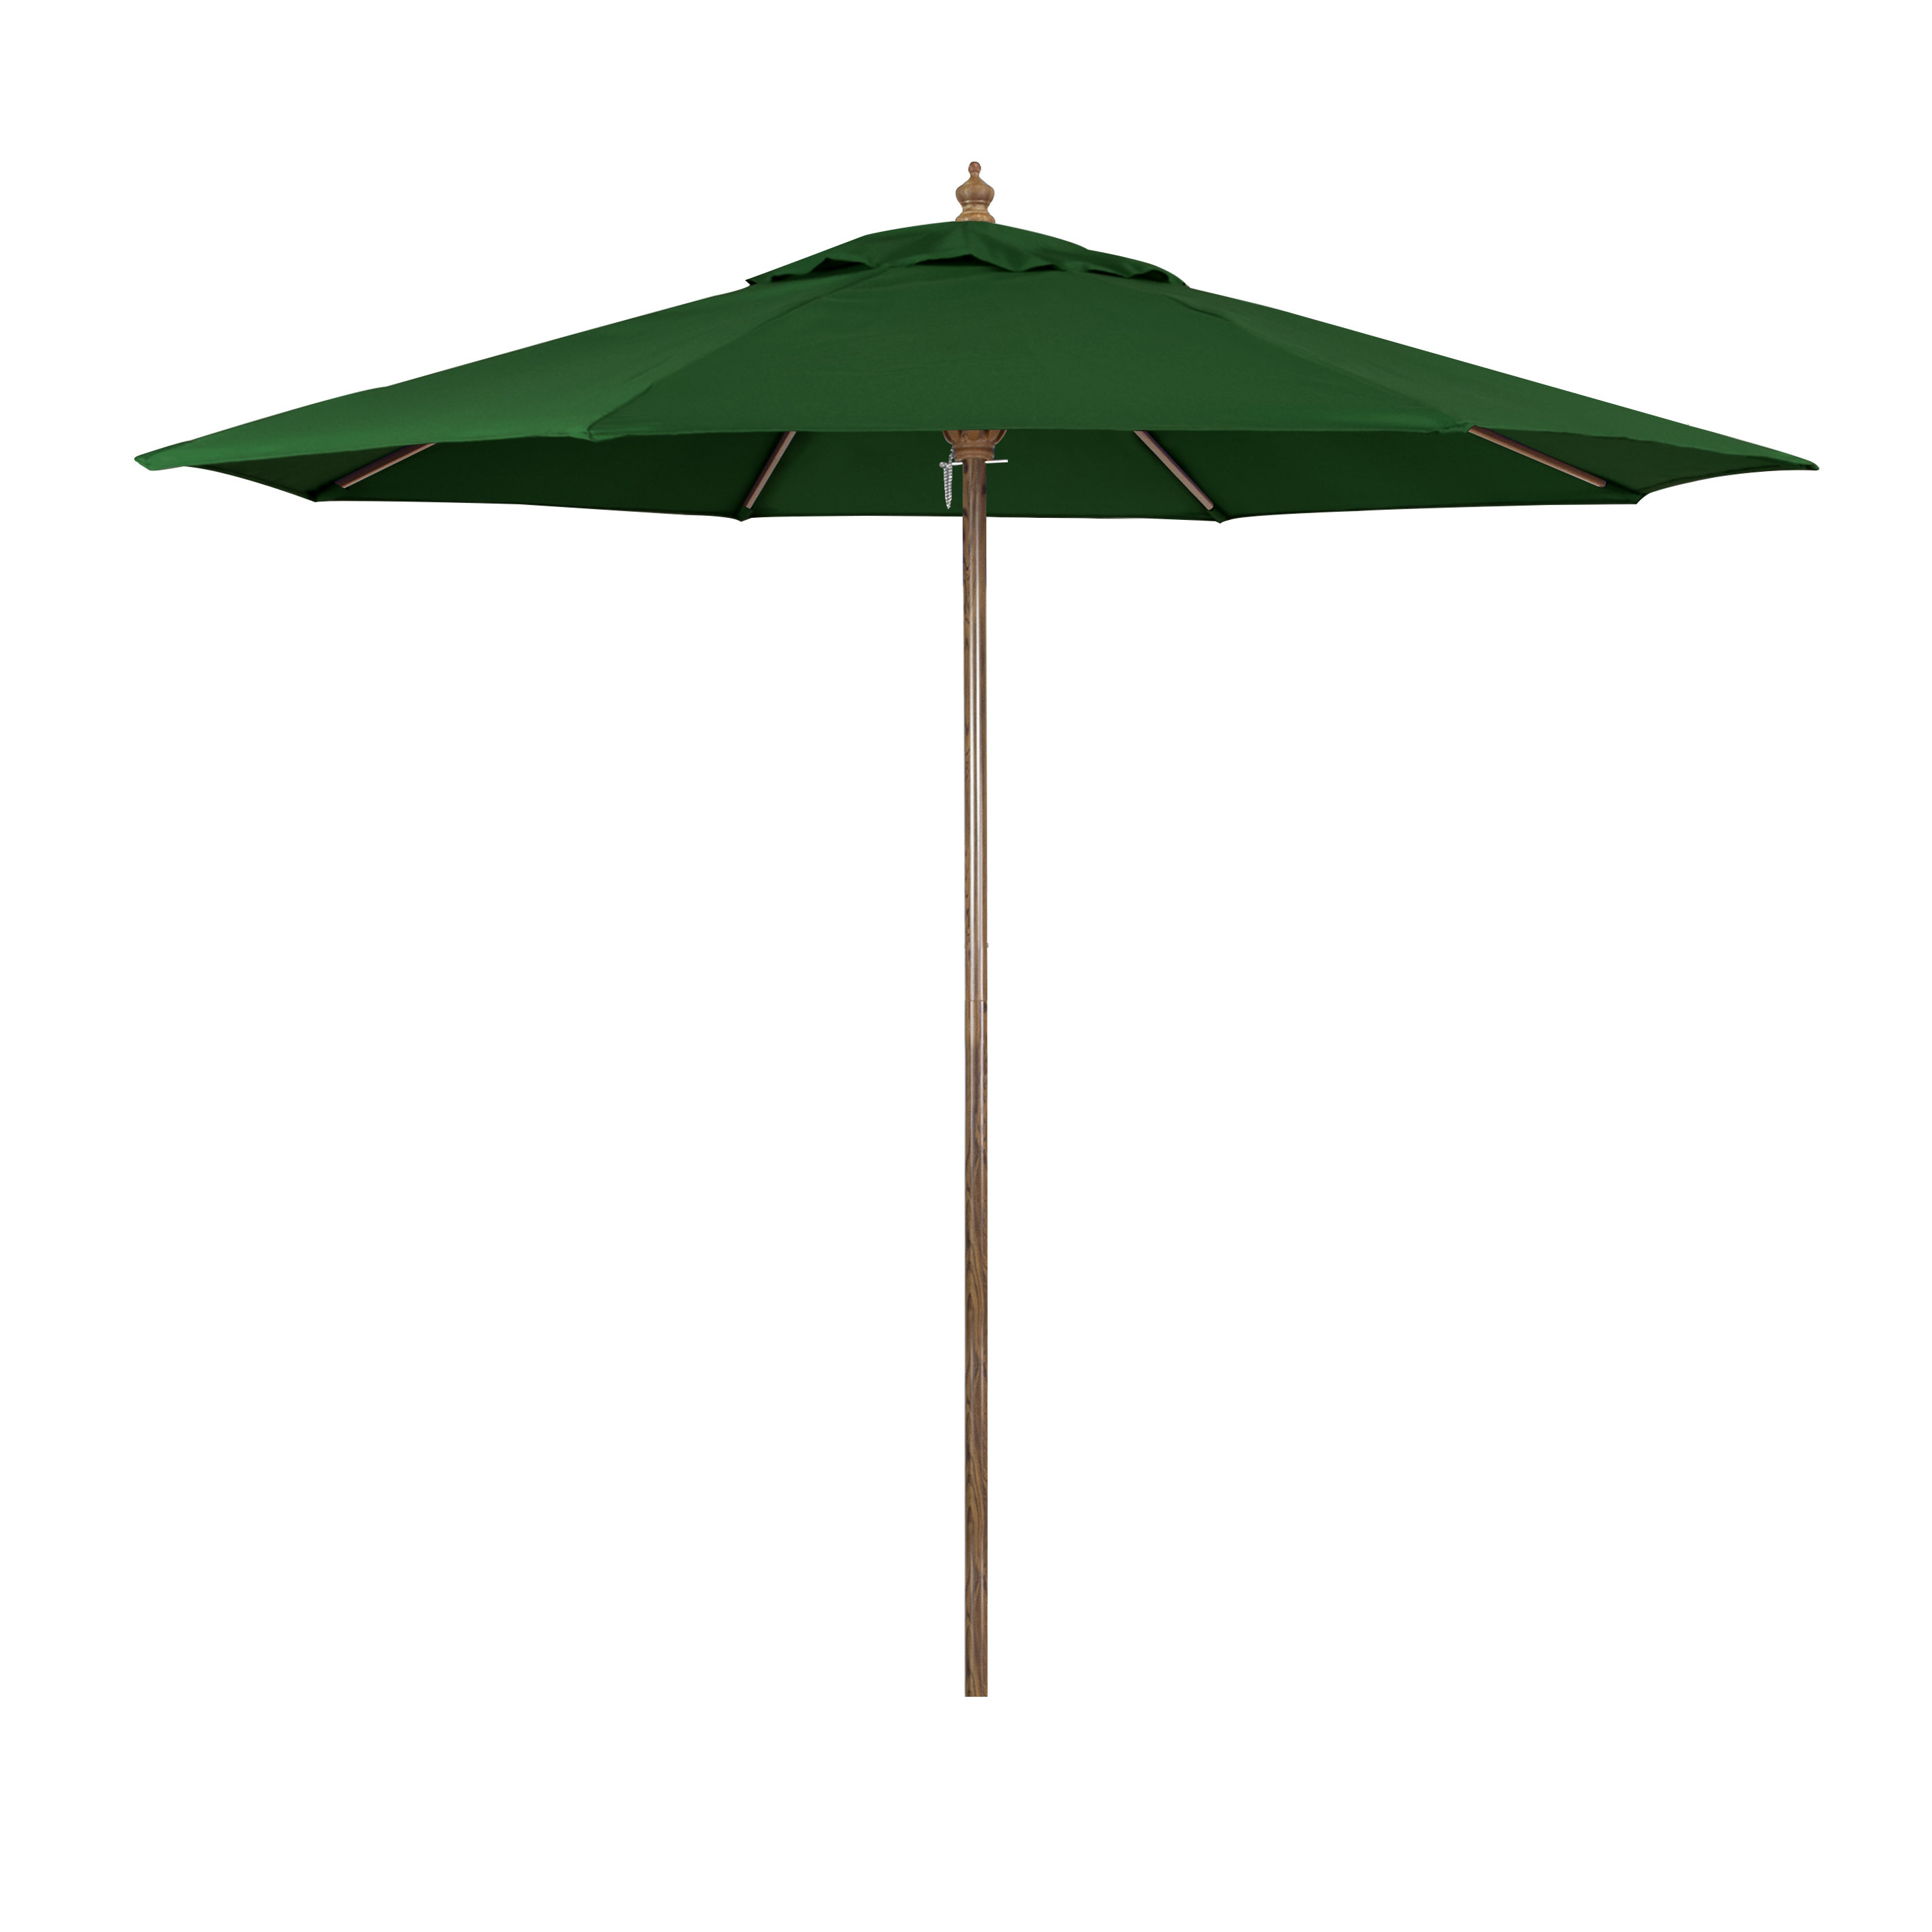 Ryant 9' Market Umbrella Throughout Widely Used Cardine Market Umbrellas (View 17 of 20)